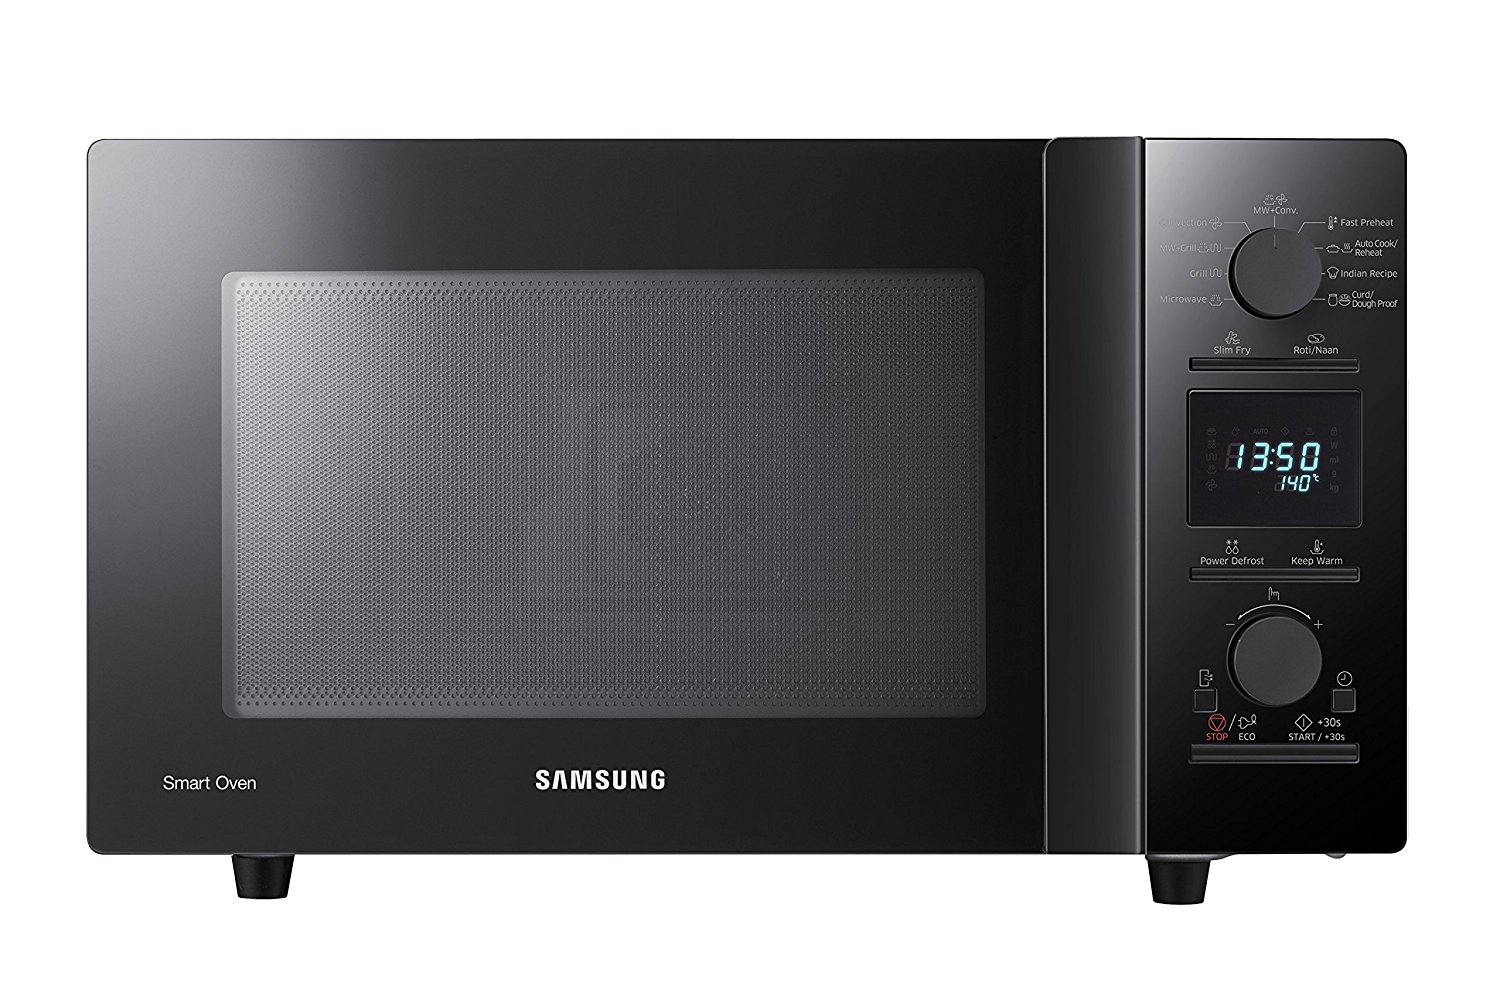 32 liters Samsung convection microwave oven